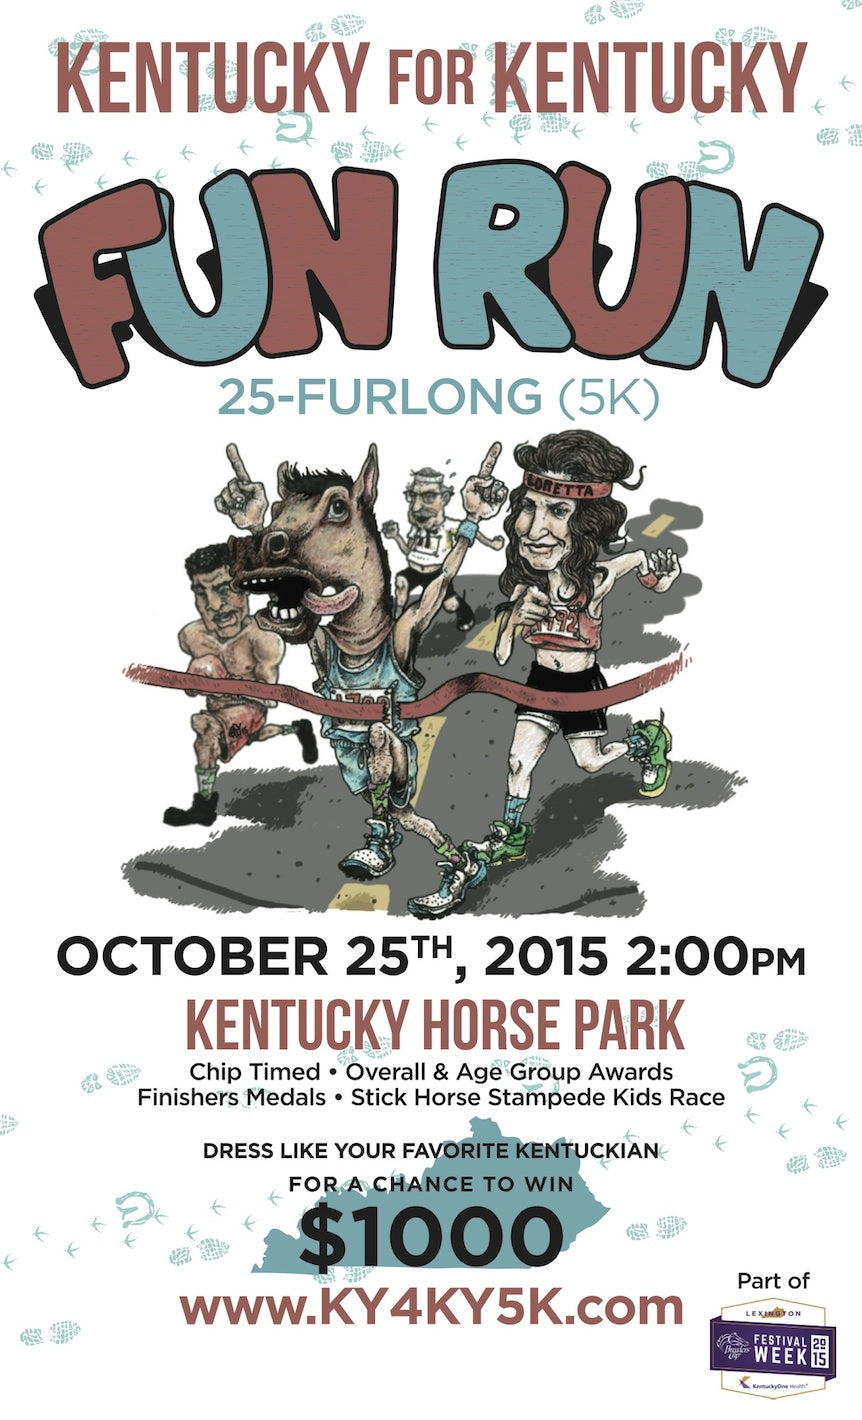 Dress Like Your Favorite Kentuckian And Run A 5k With Us!